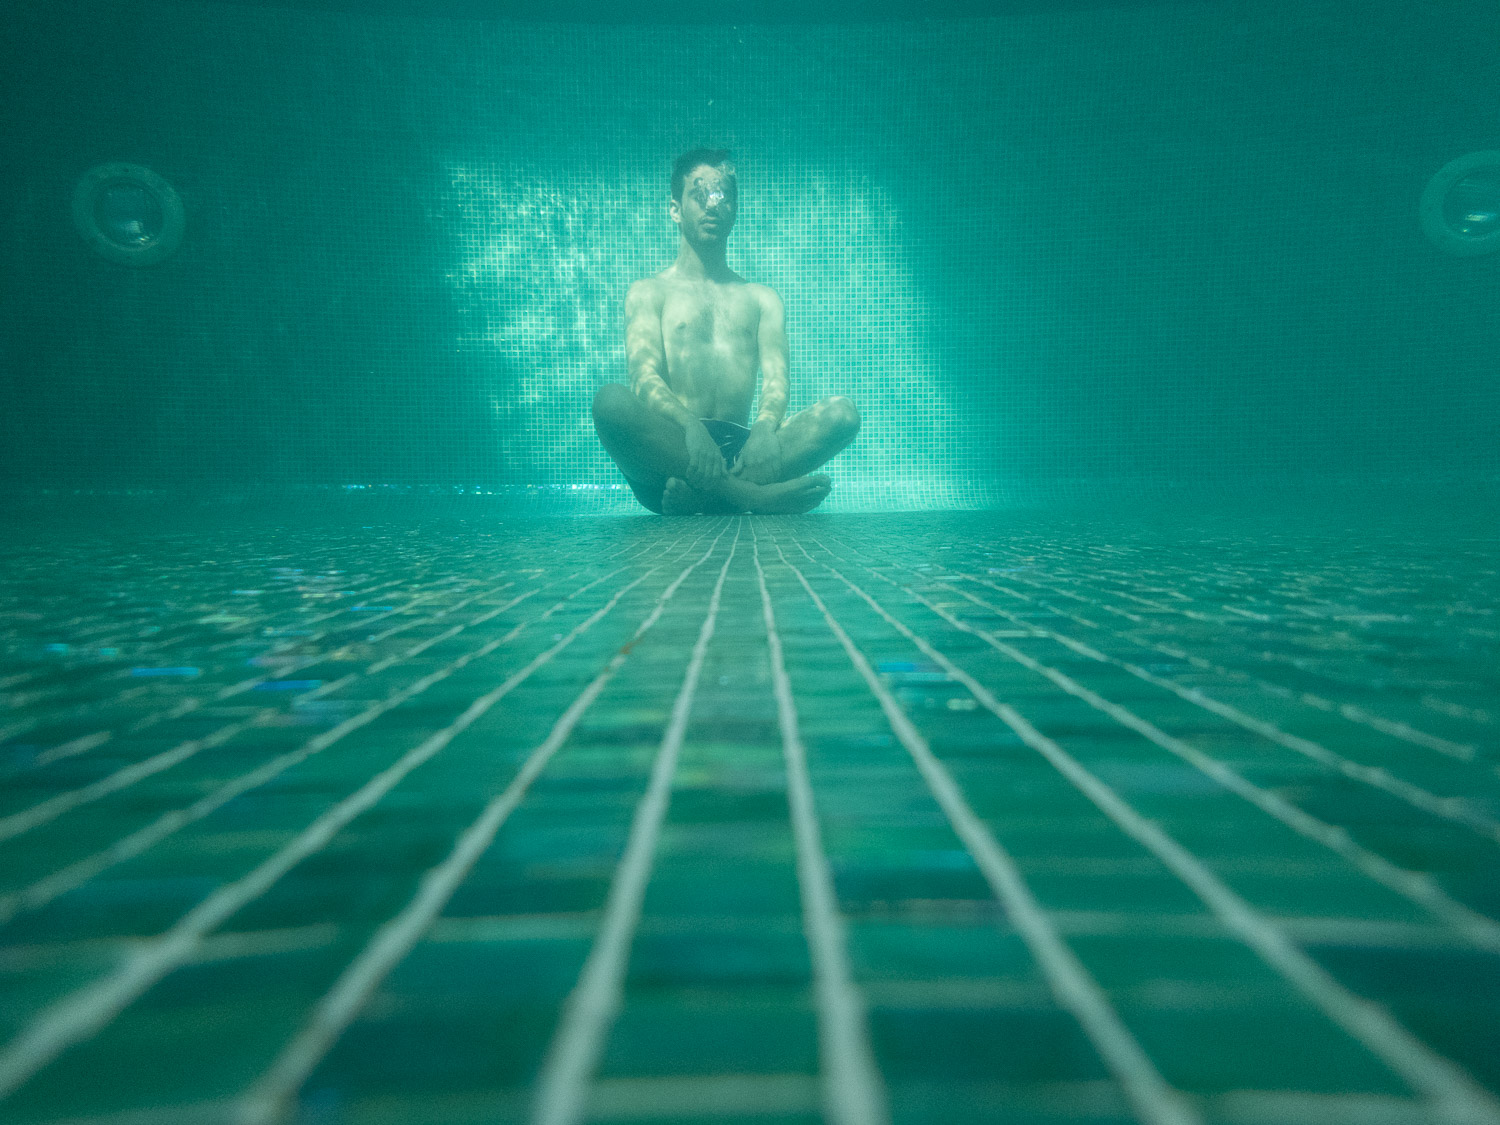 Underwater-Pool-Test-Reject-Photography-Turquoise-RAW-3.jpg